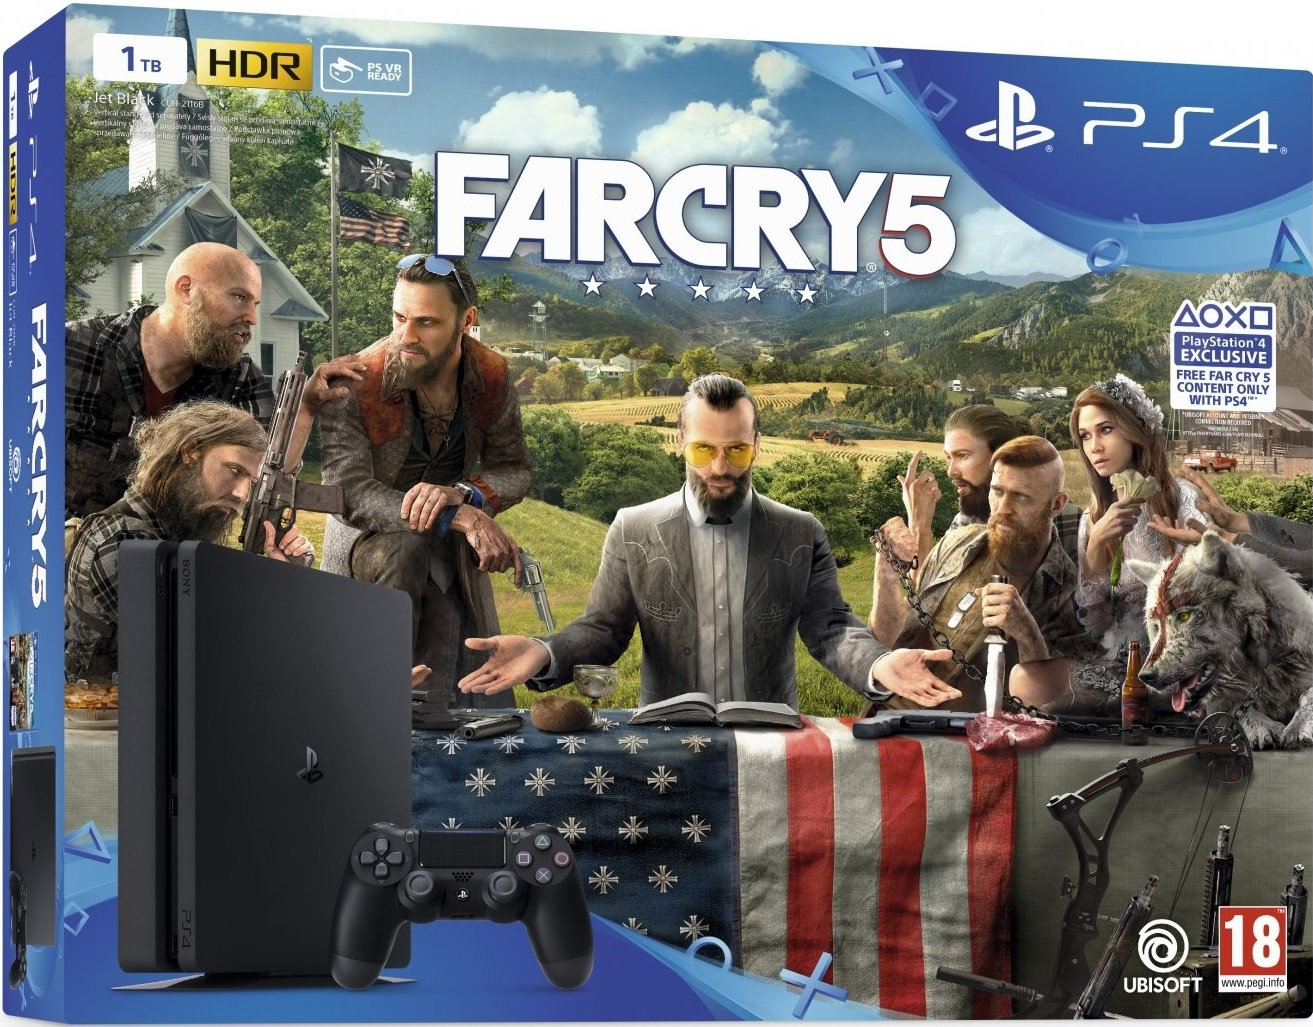 Sony Playstation 4 Slim 1TB Far Cry 5 Bundle